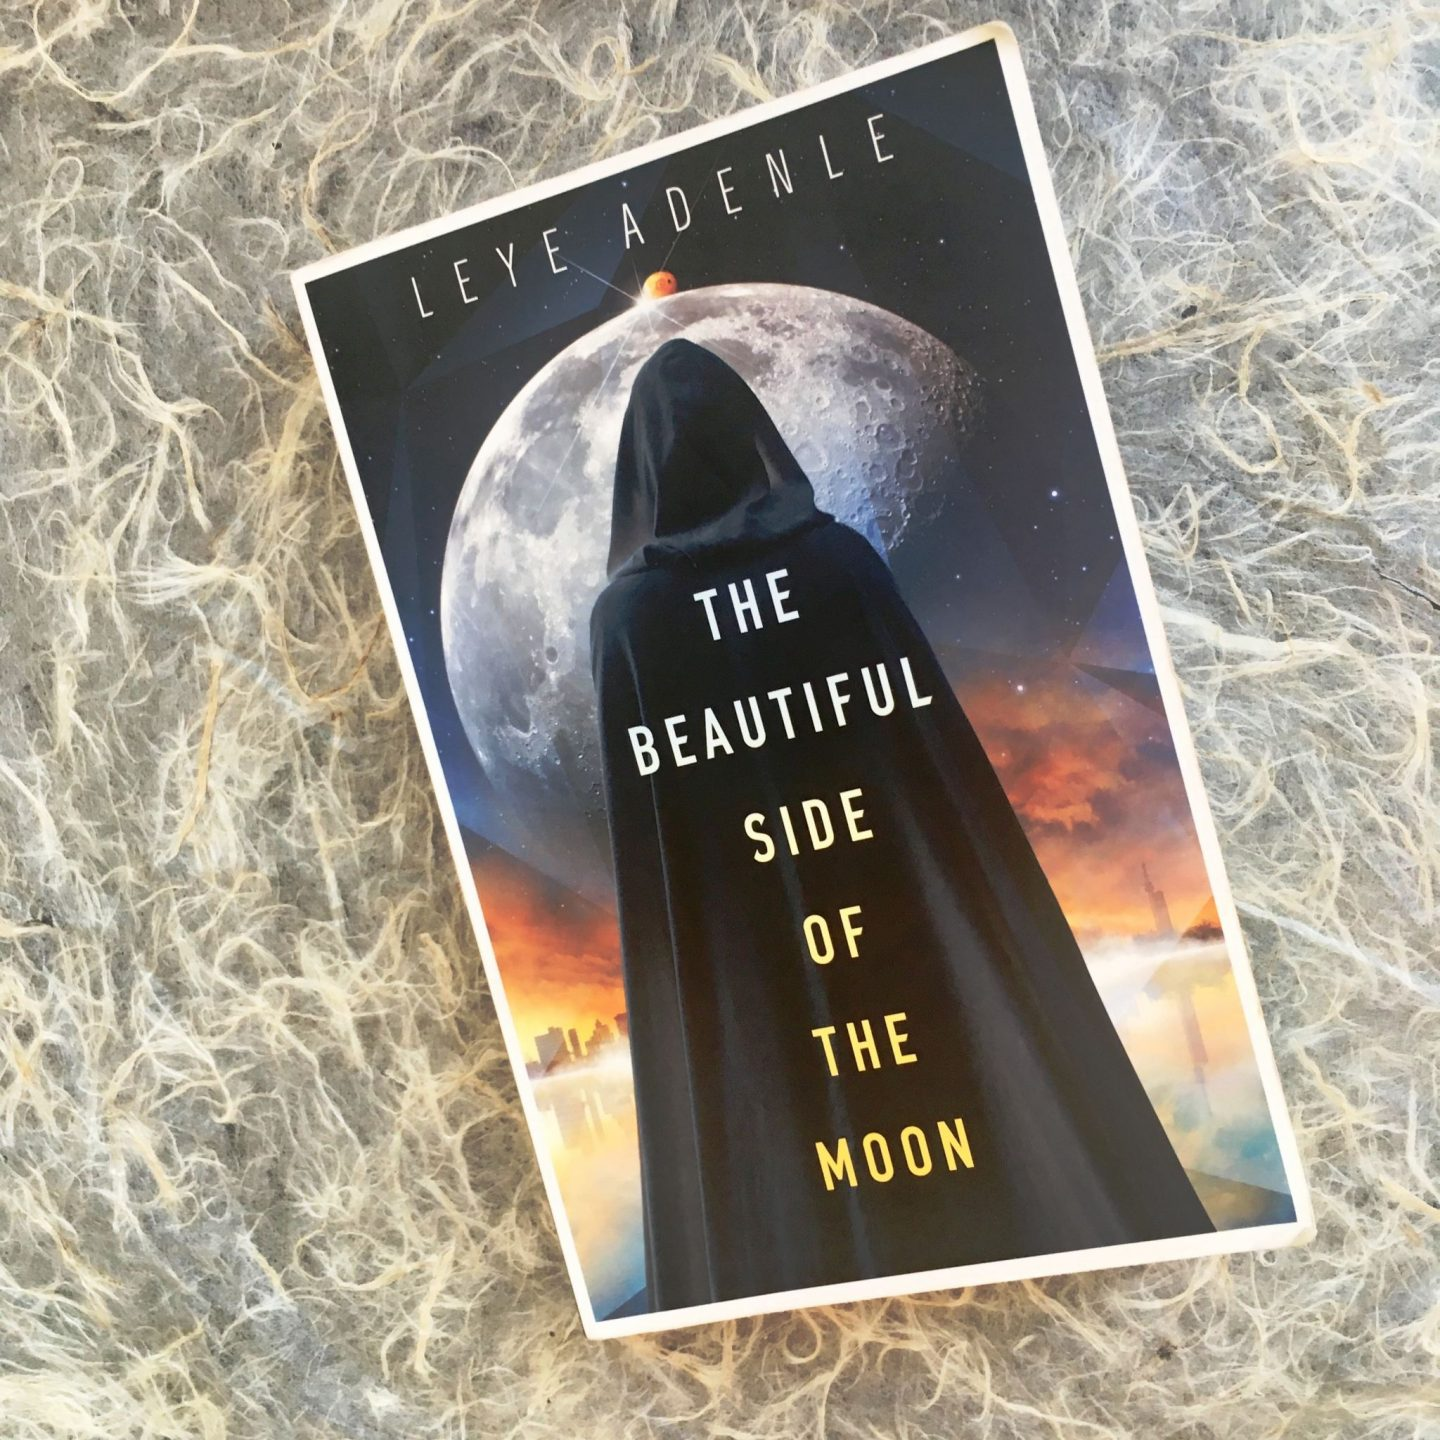 Blog Tour Review: The Beautiful Side of the Moon